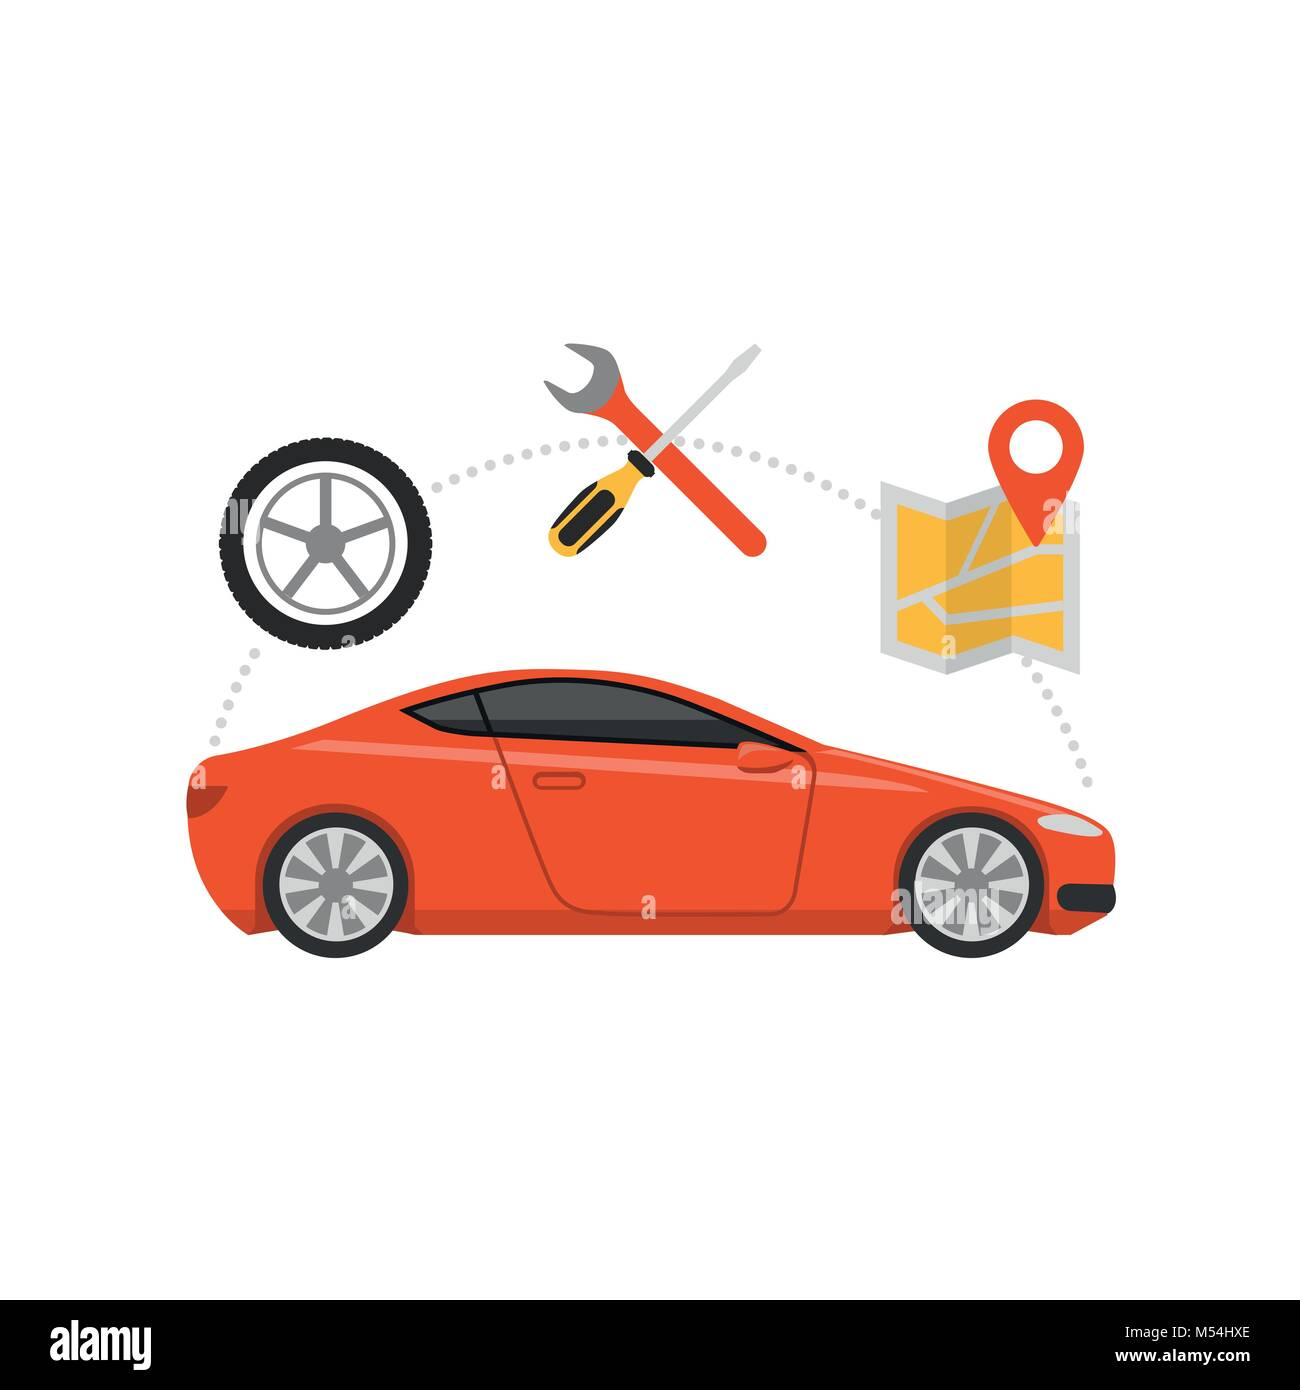 Car servicing and gps navigation, automotive and roadside assistance concept - Stock Image